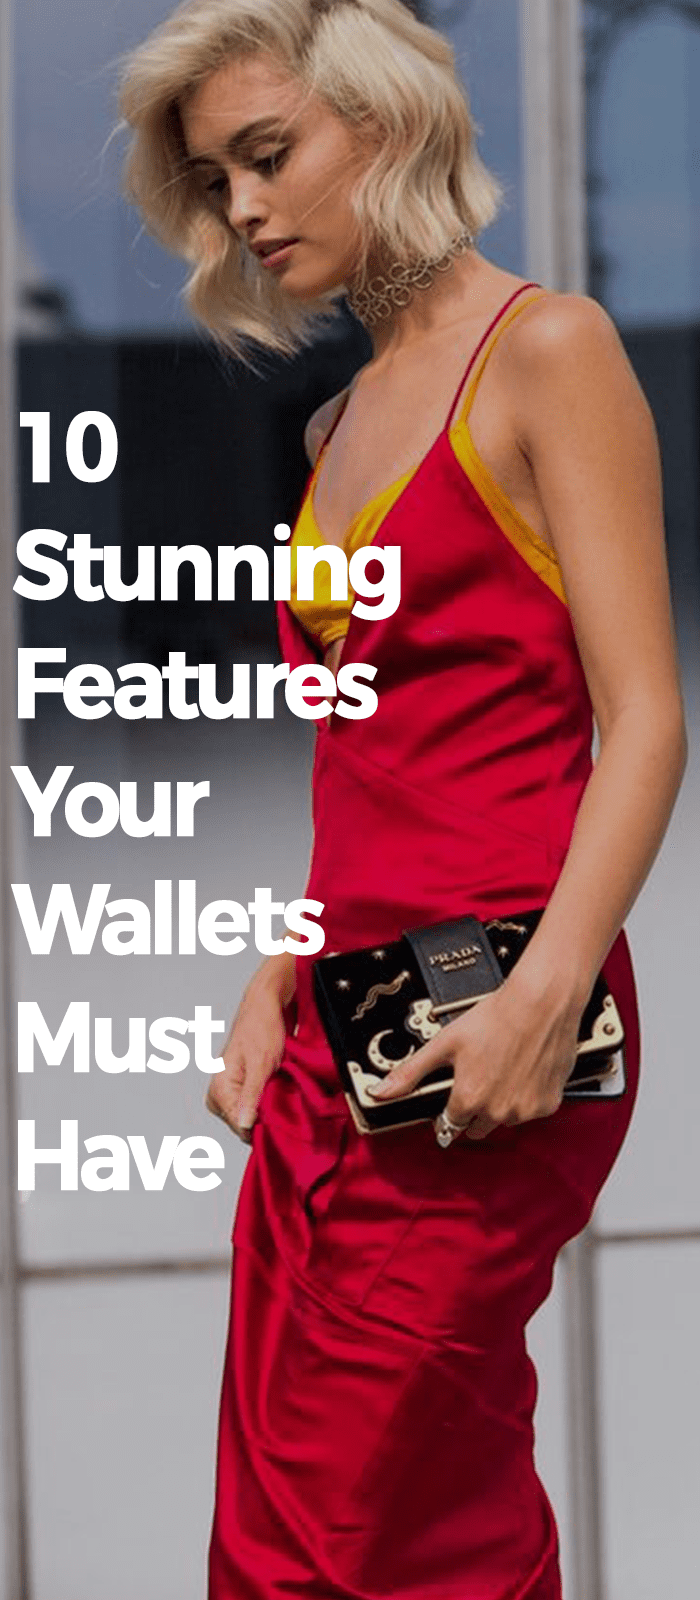 10 Stunning Features Your Wallets Must Have!